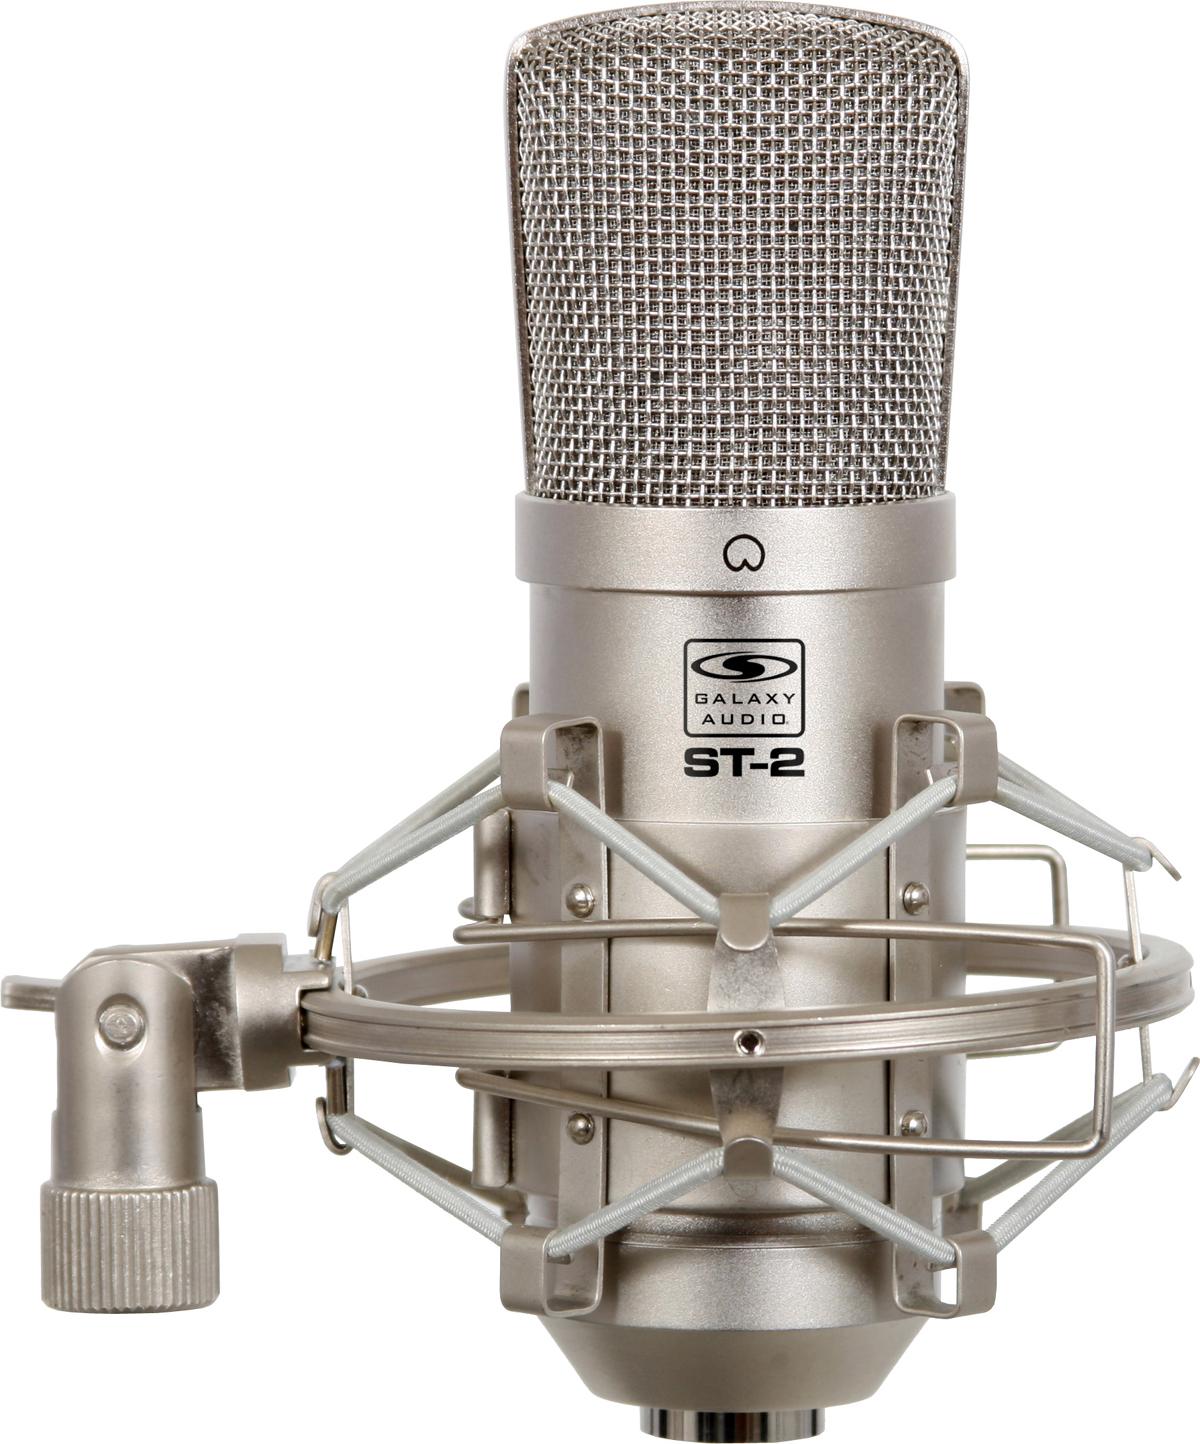 Galaxy Audio ST-2 Studio Condenser Microphones with XLR Output